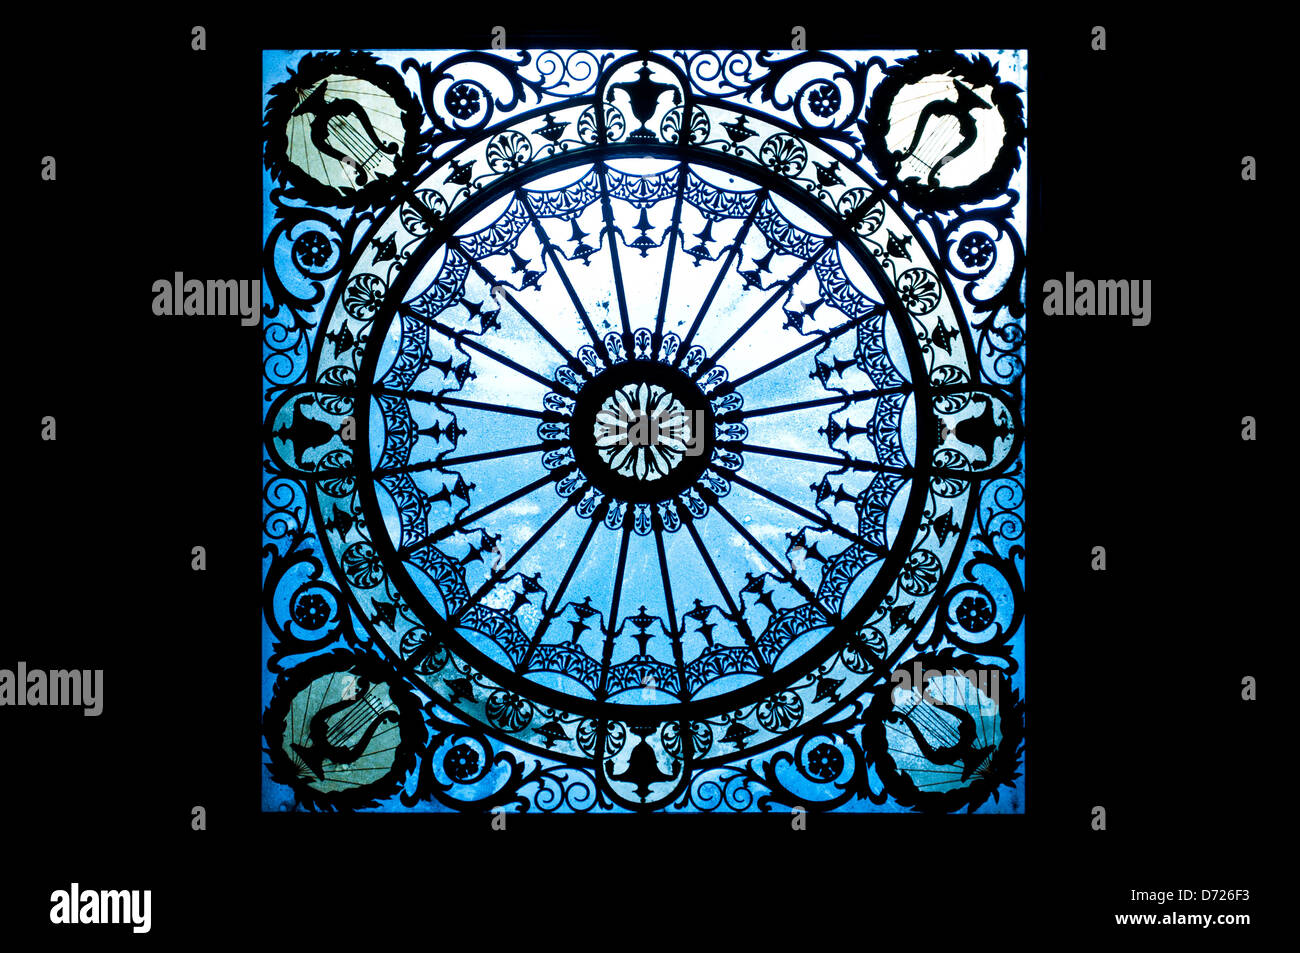 Stained glass ceiling in Gran Teatre del Liceu, Barcelona, Catalonia, Spain - Stock Image